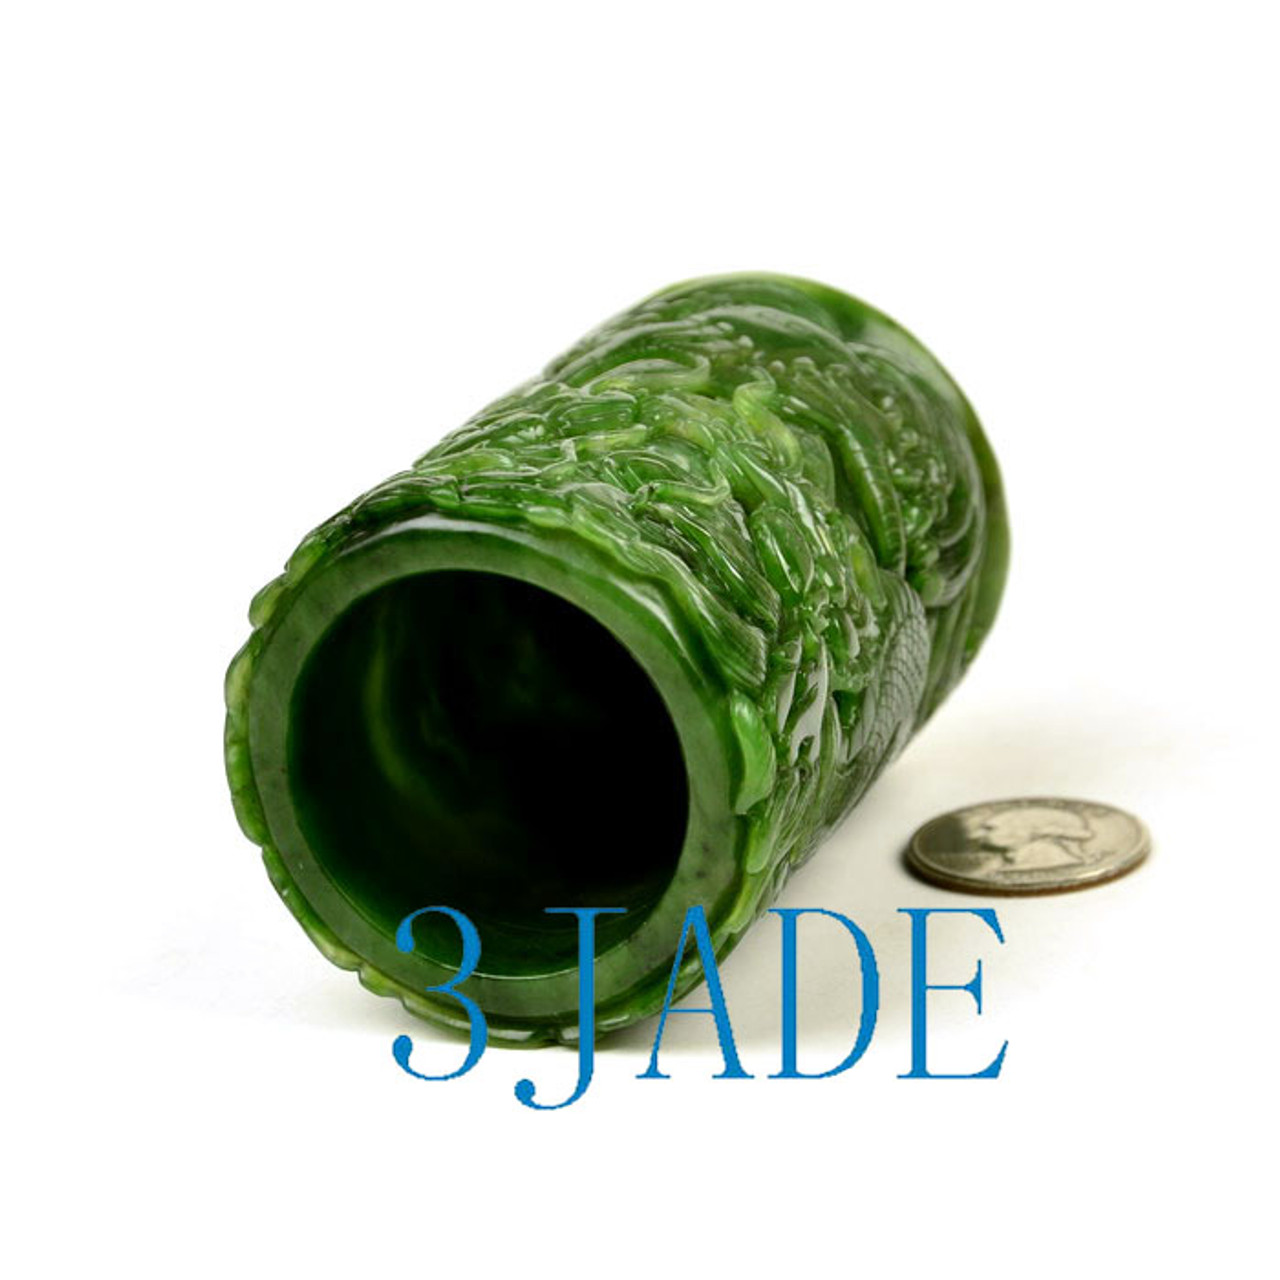 Green Nephrite Jade Pen Holder Pencil Cup w/ Carved Chinese Dragon